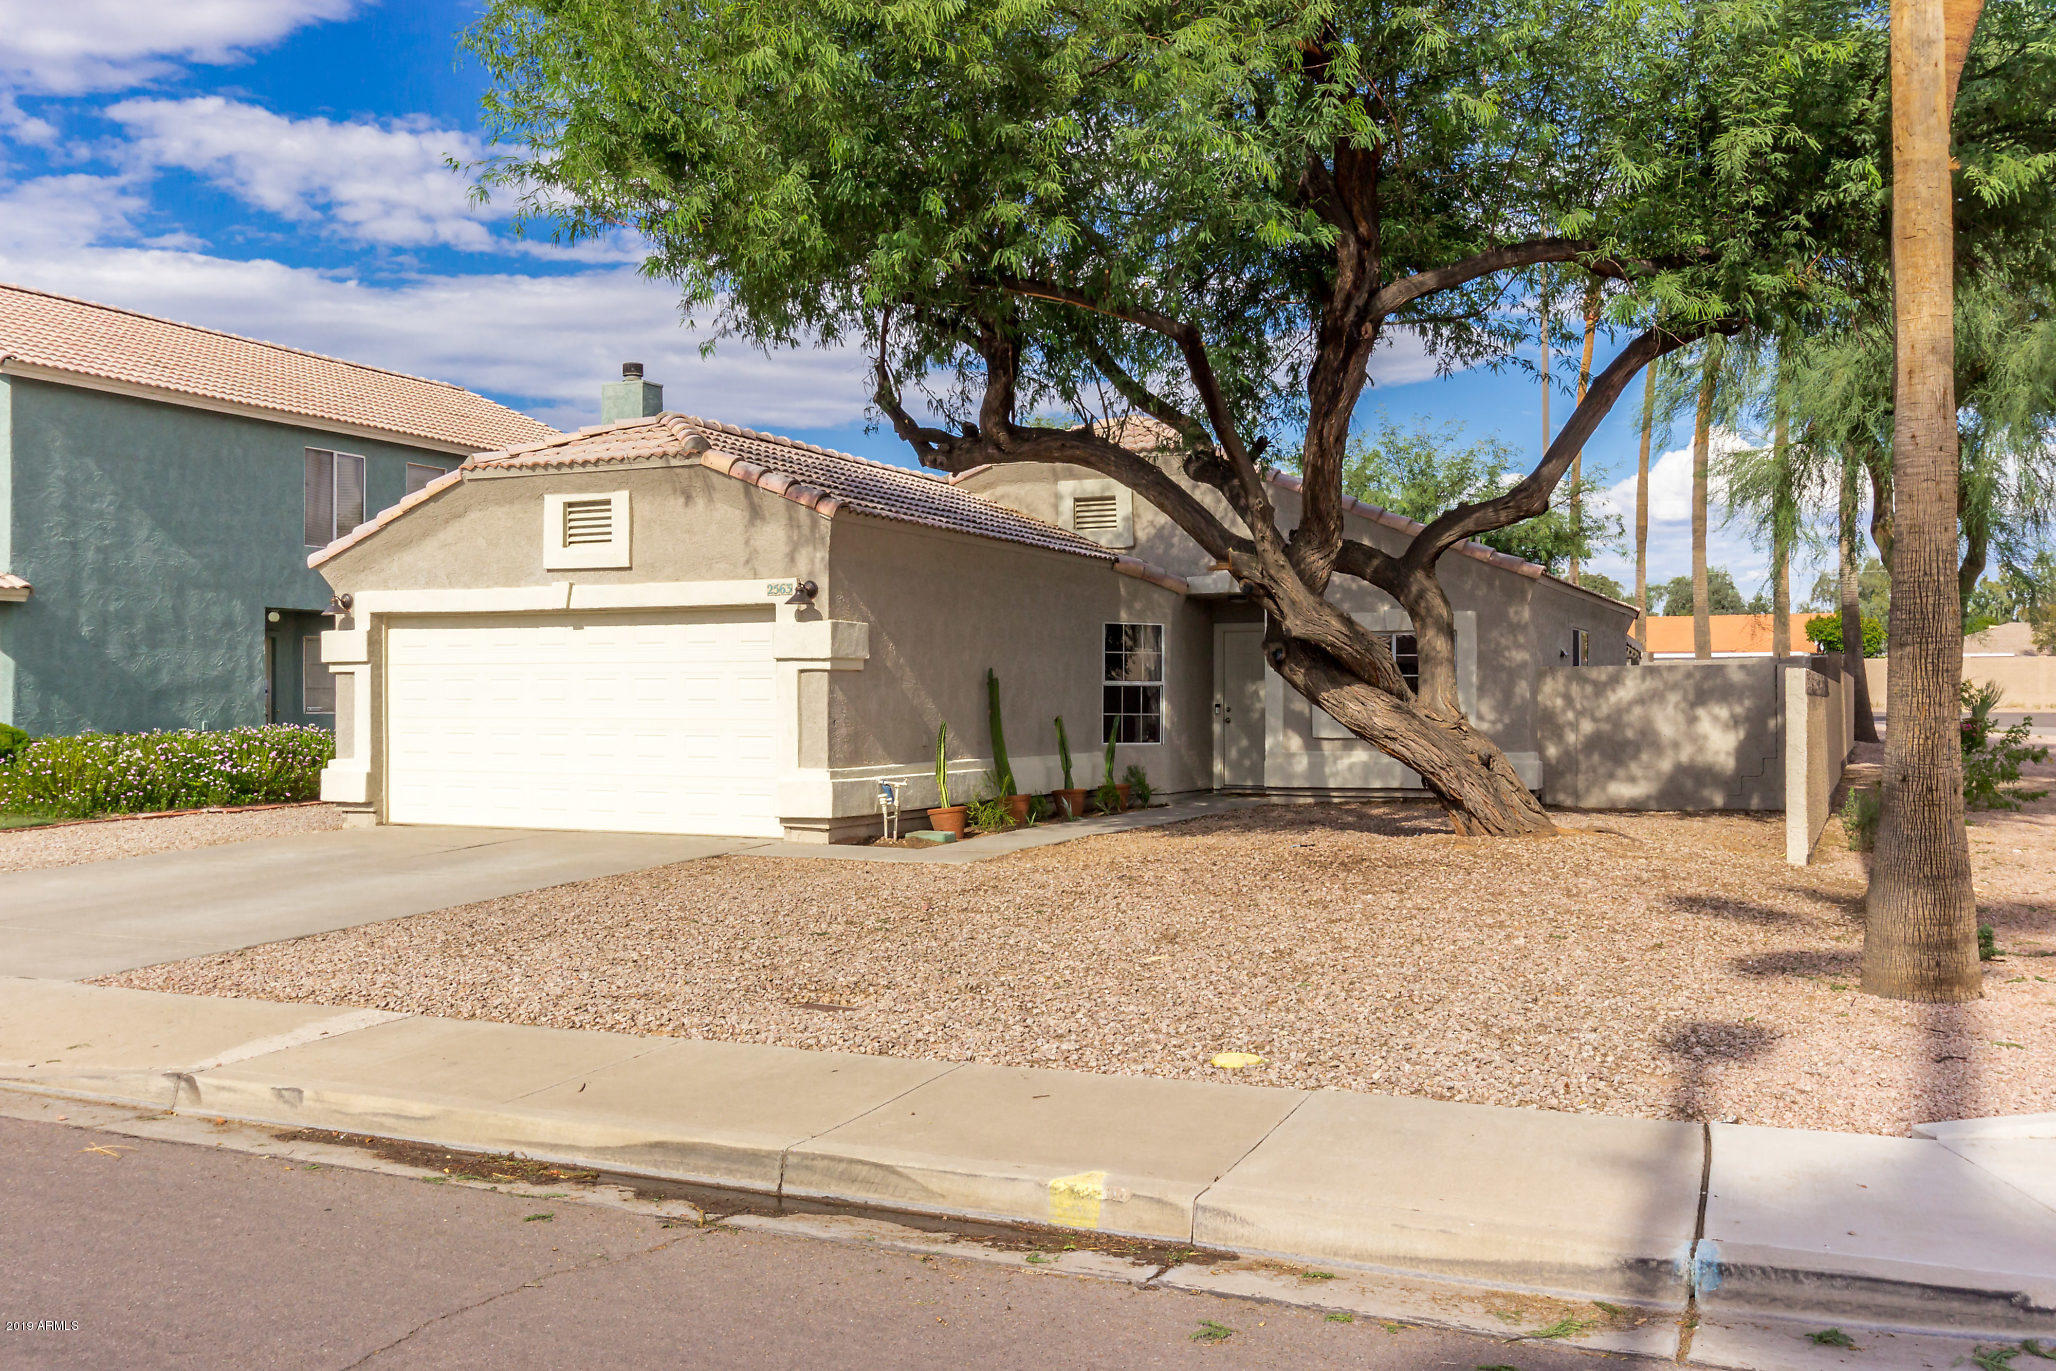 Photo of 2563 S ANANEA --, Mesa, AZ 85209